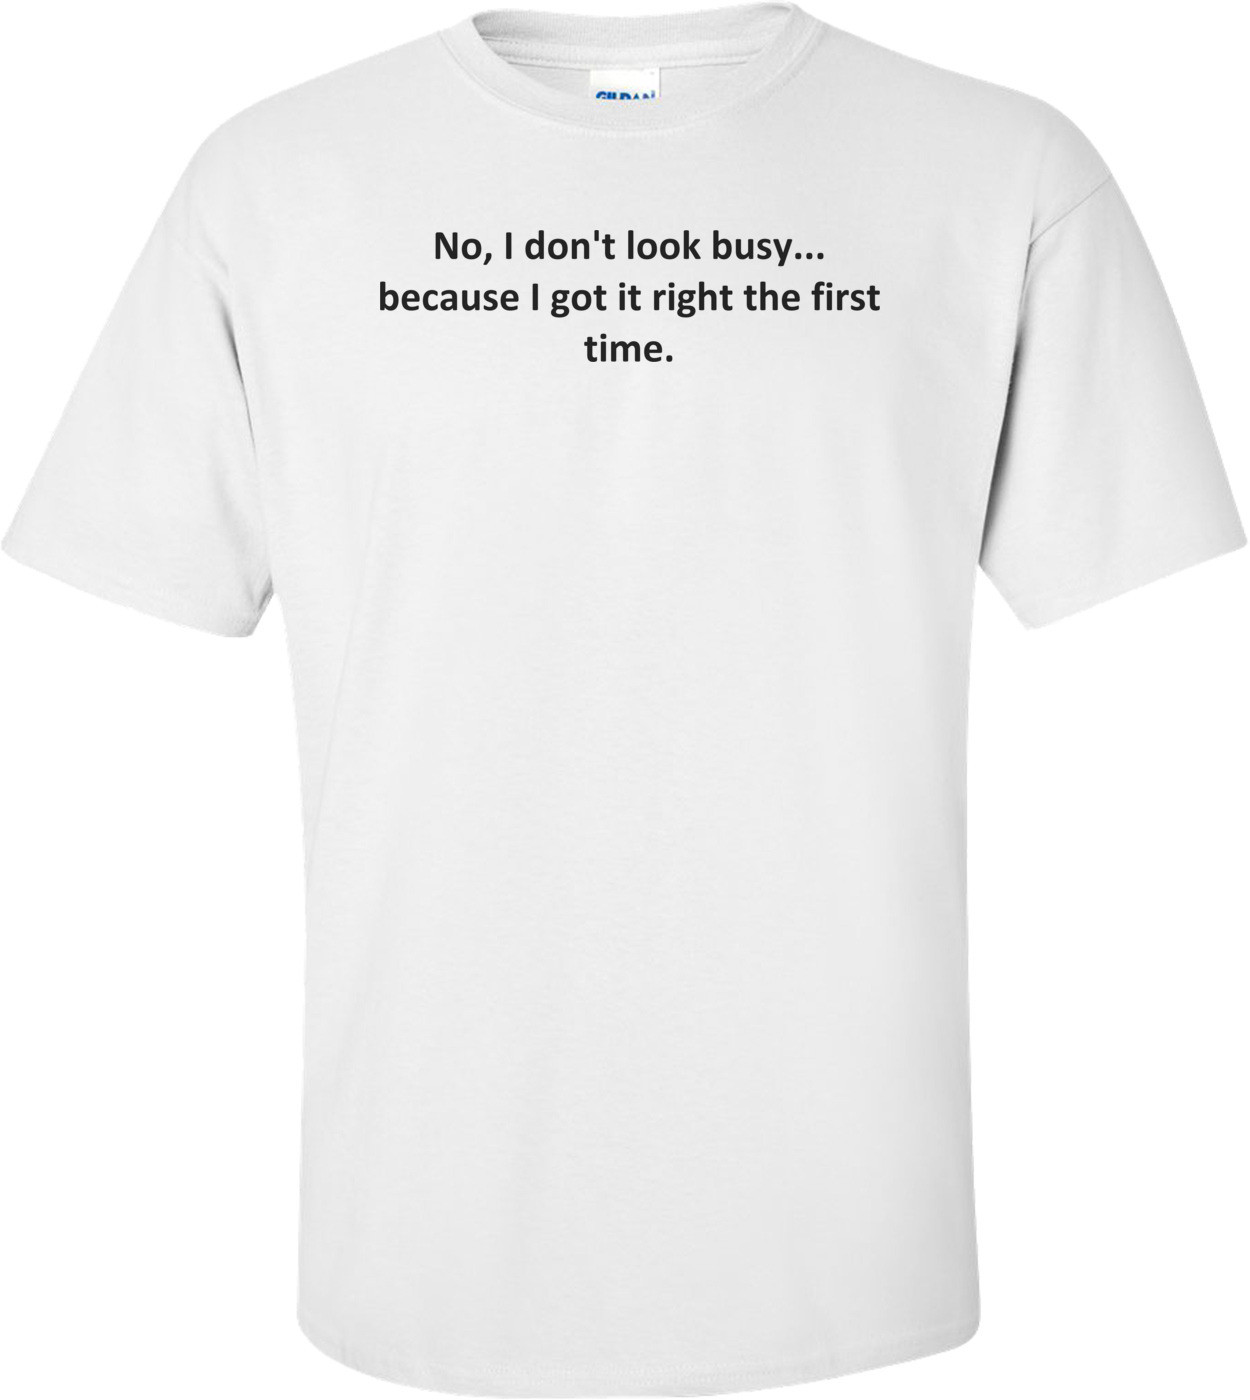 No, I don't look busy... because I got it right the first time. Shirt